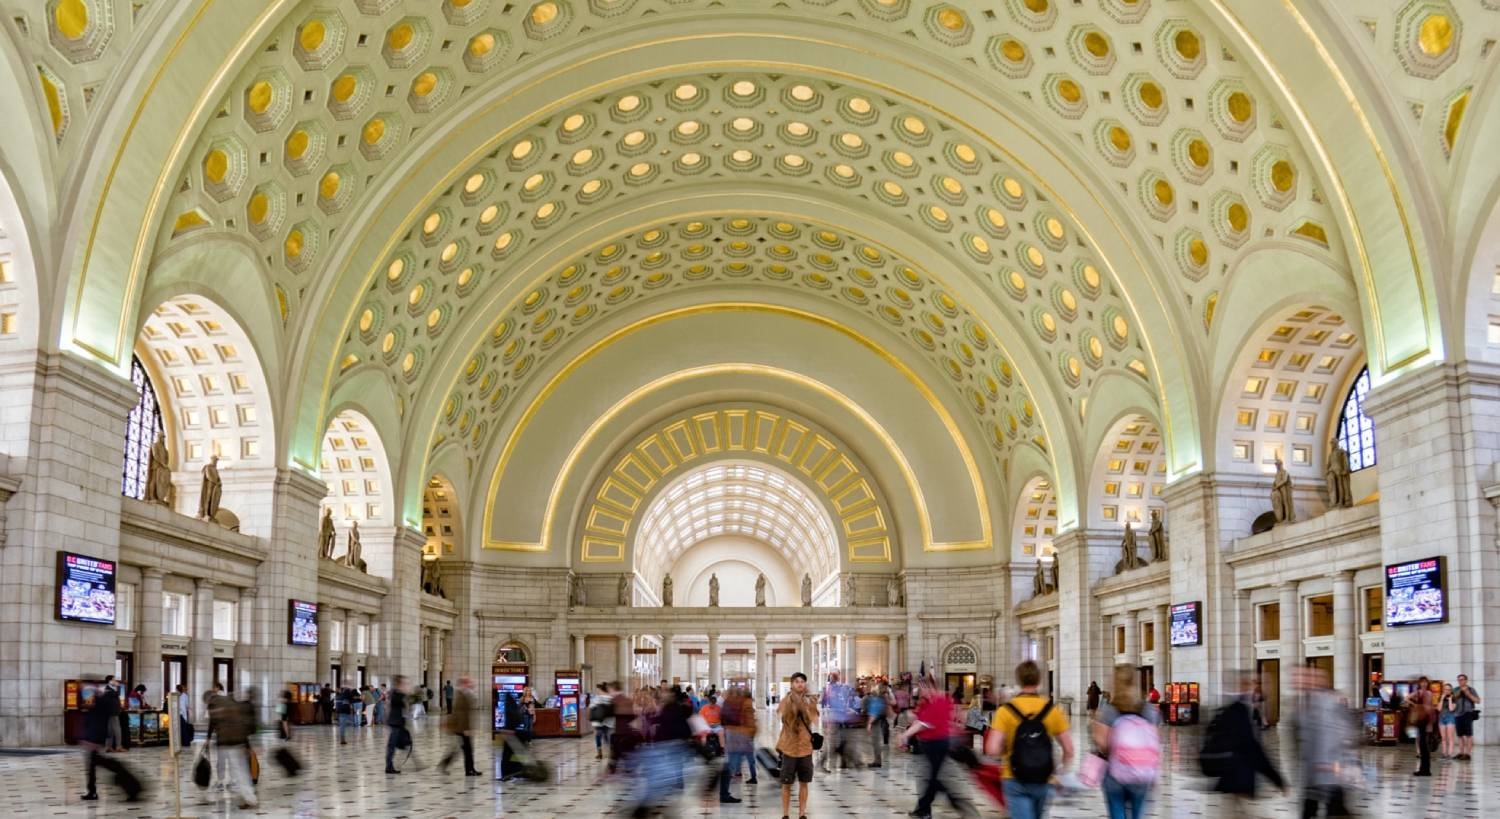 Union Station - Things To Do In Washington, D.C.